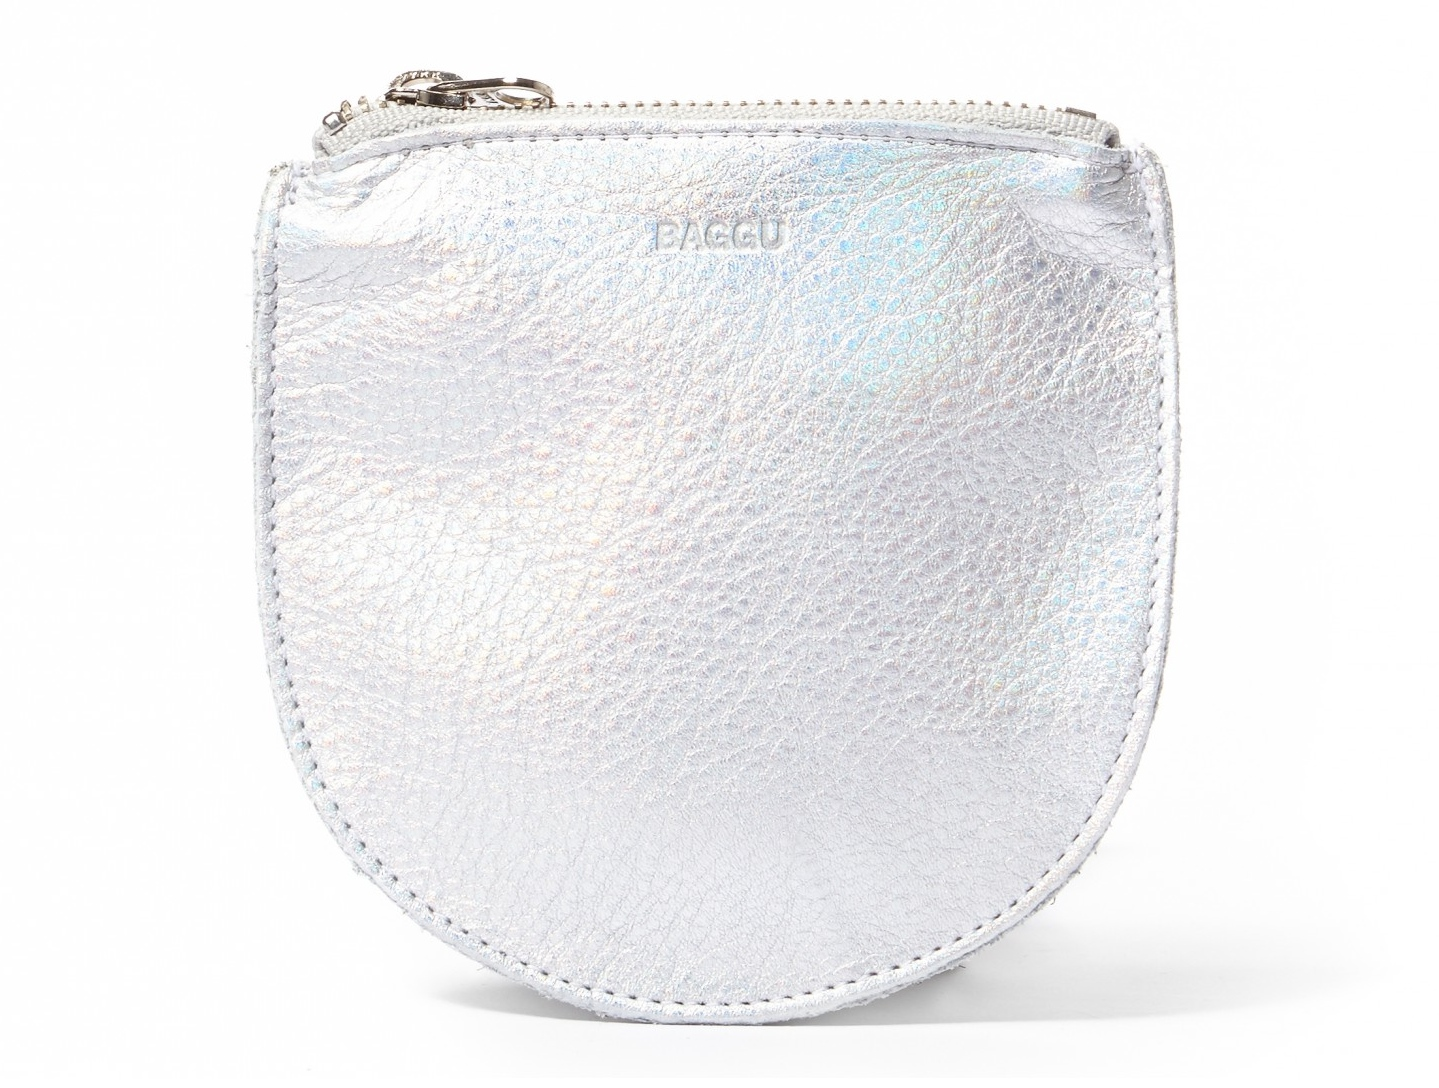 Baggu Silver pouch, comes in 3 different colors. Made in USA, and Under 30 dollars